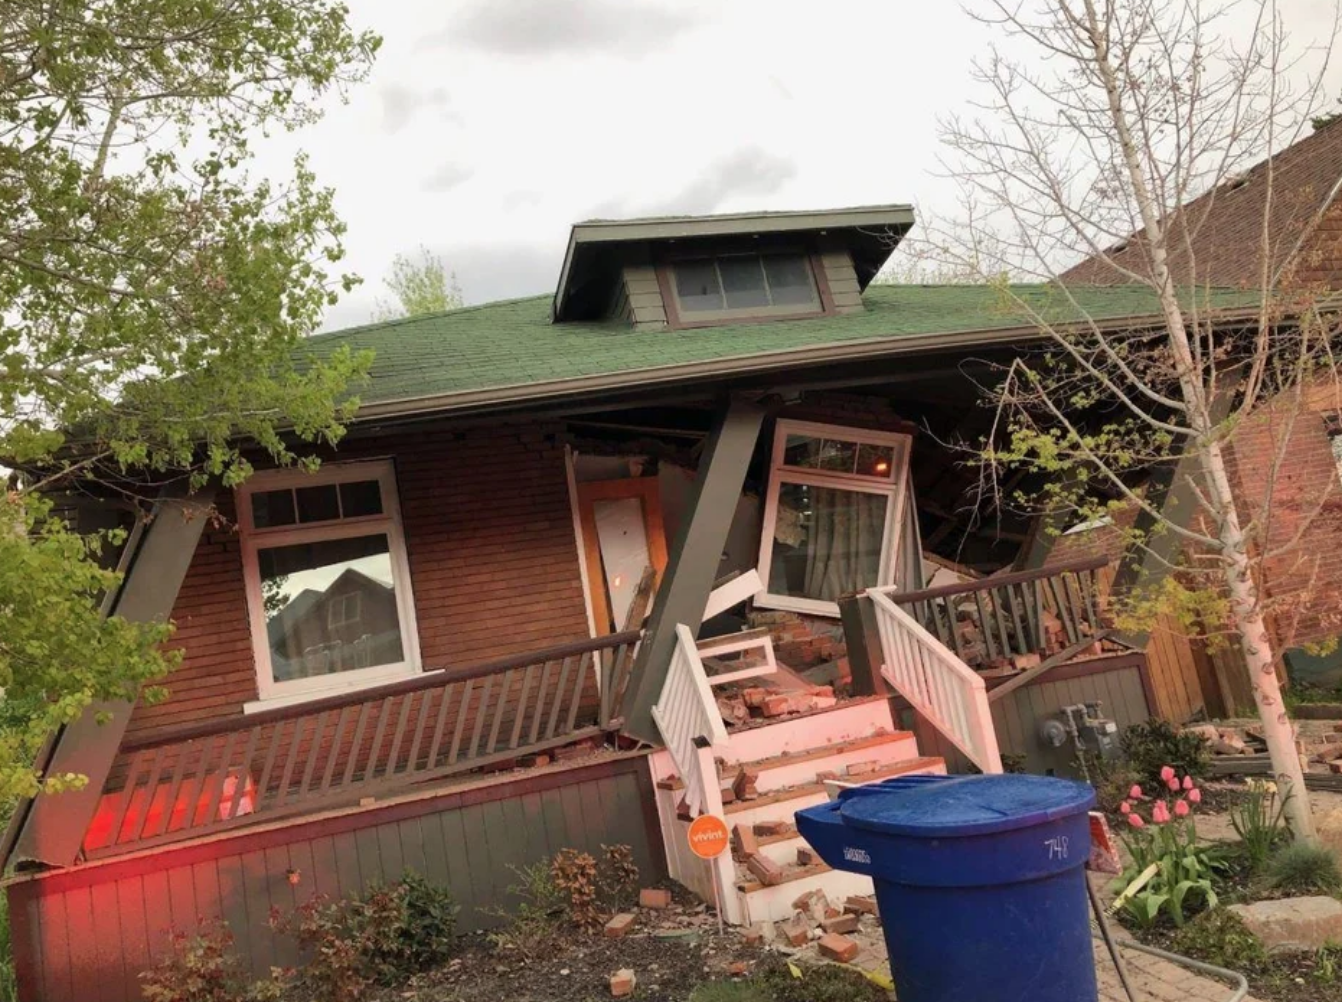 load bearing wall removal causes house to fall down